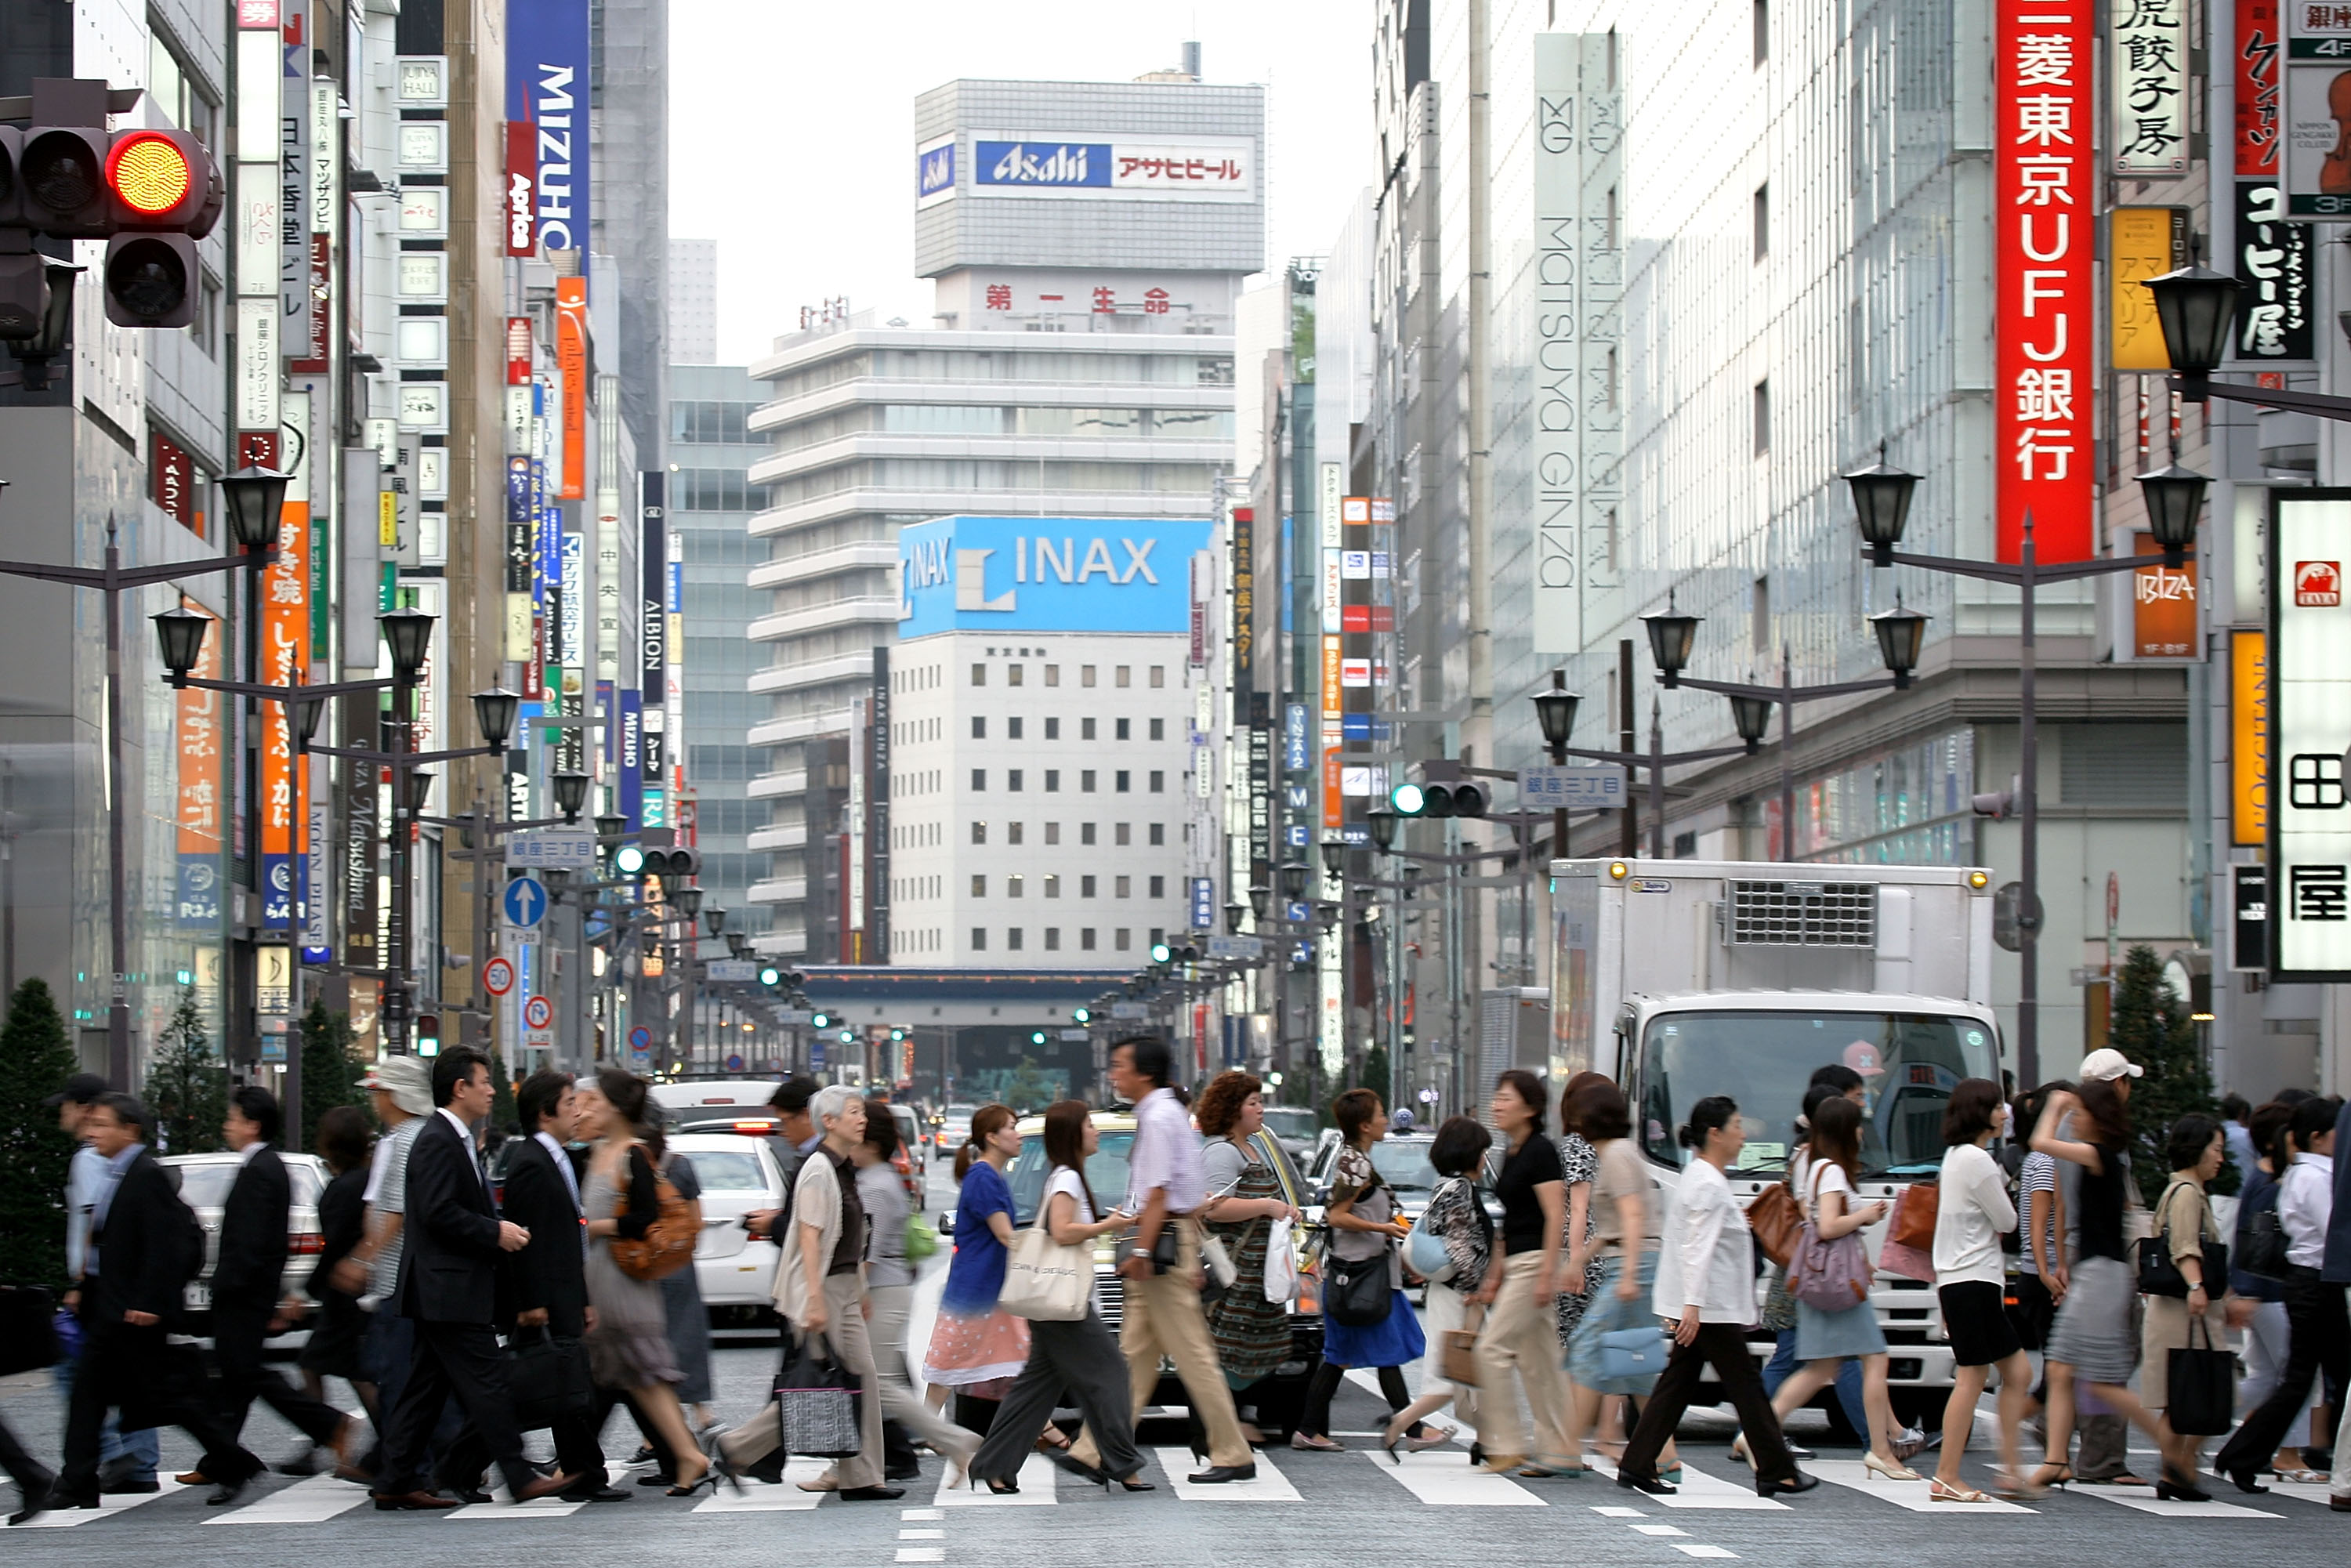 People walk across the street in the Ginza district on July 10, 2009 in Tokyo, Japan.